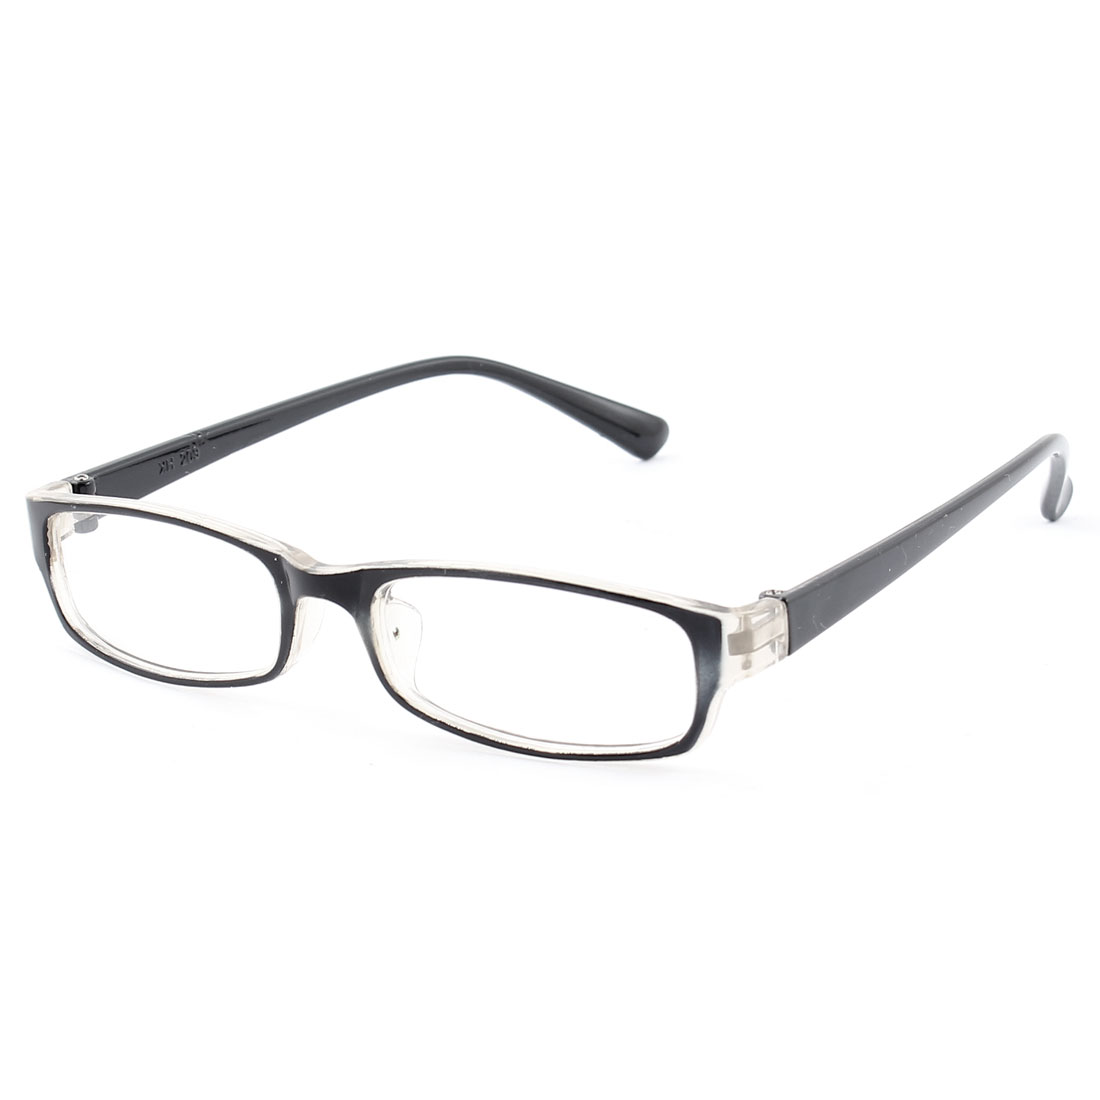 Plastic Full Rim Plain Eyeglasses Plano Glasses Black Clear